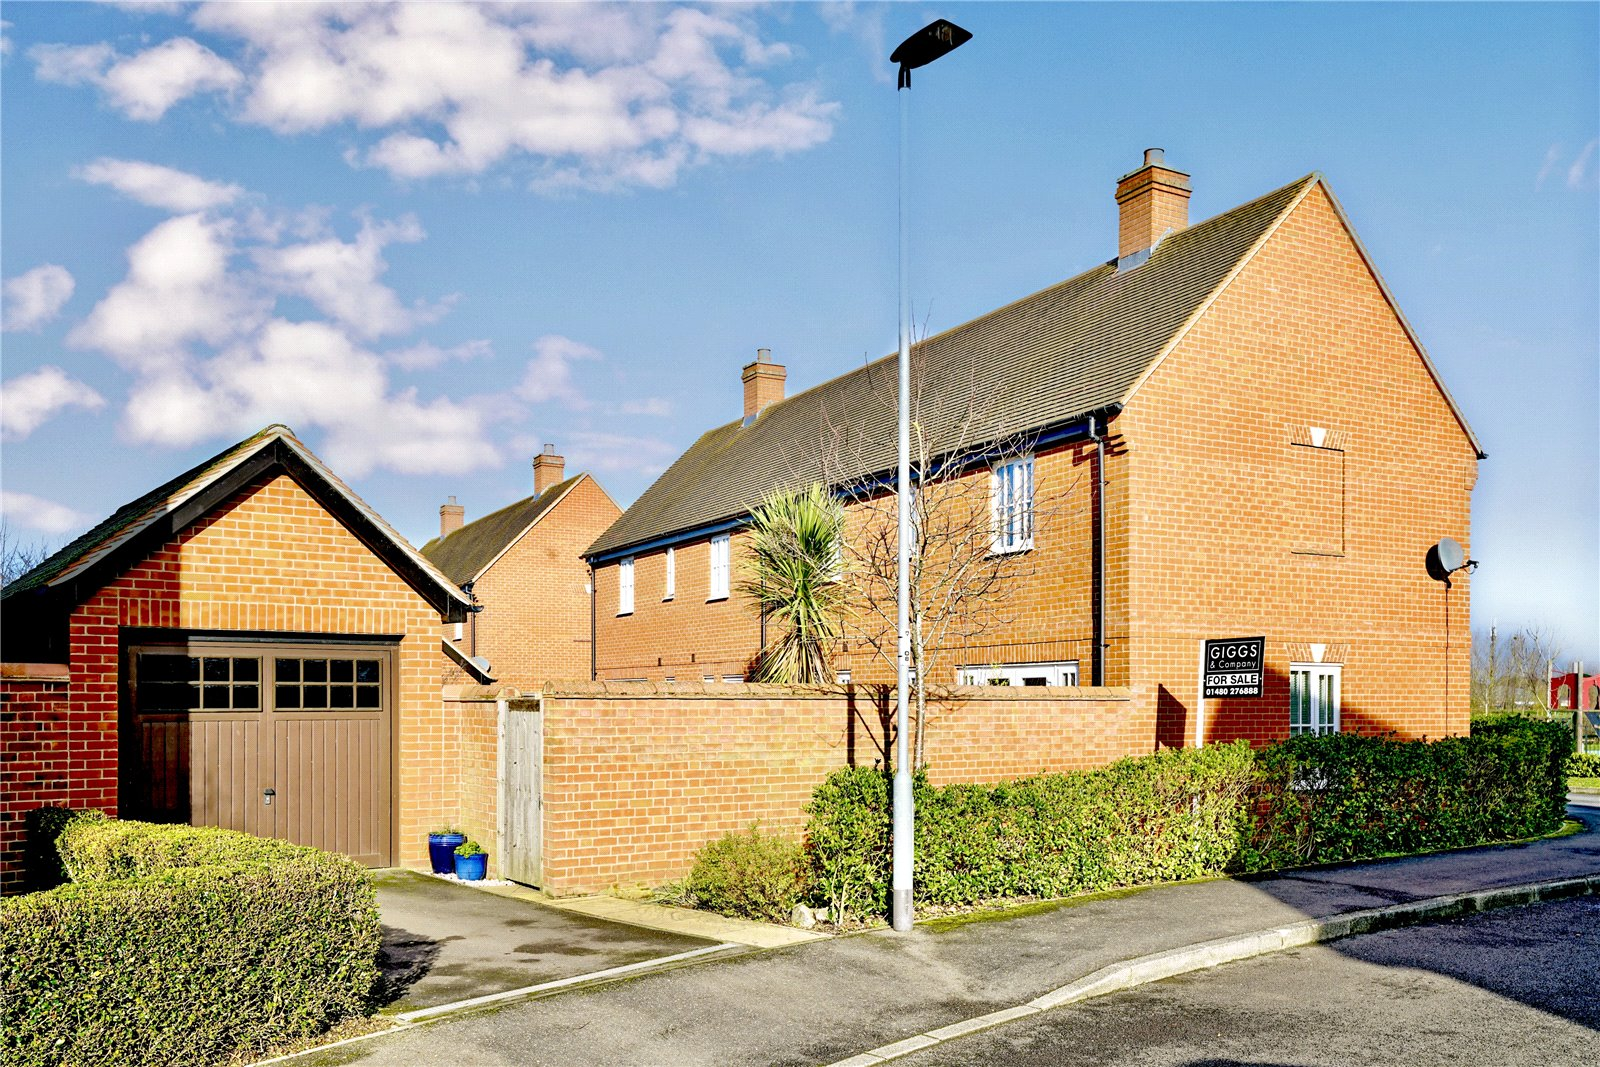 3 bed house for sale in Woodpecker Close, Great Barford 11